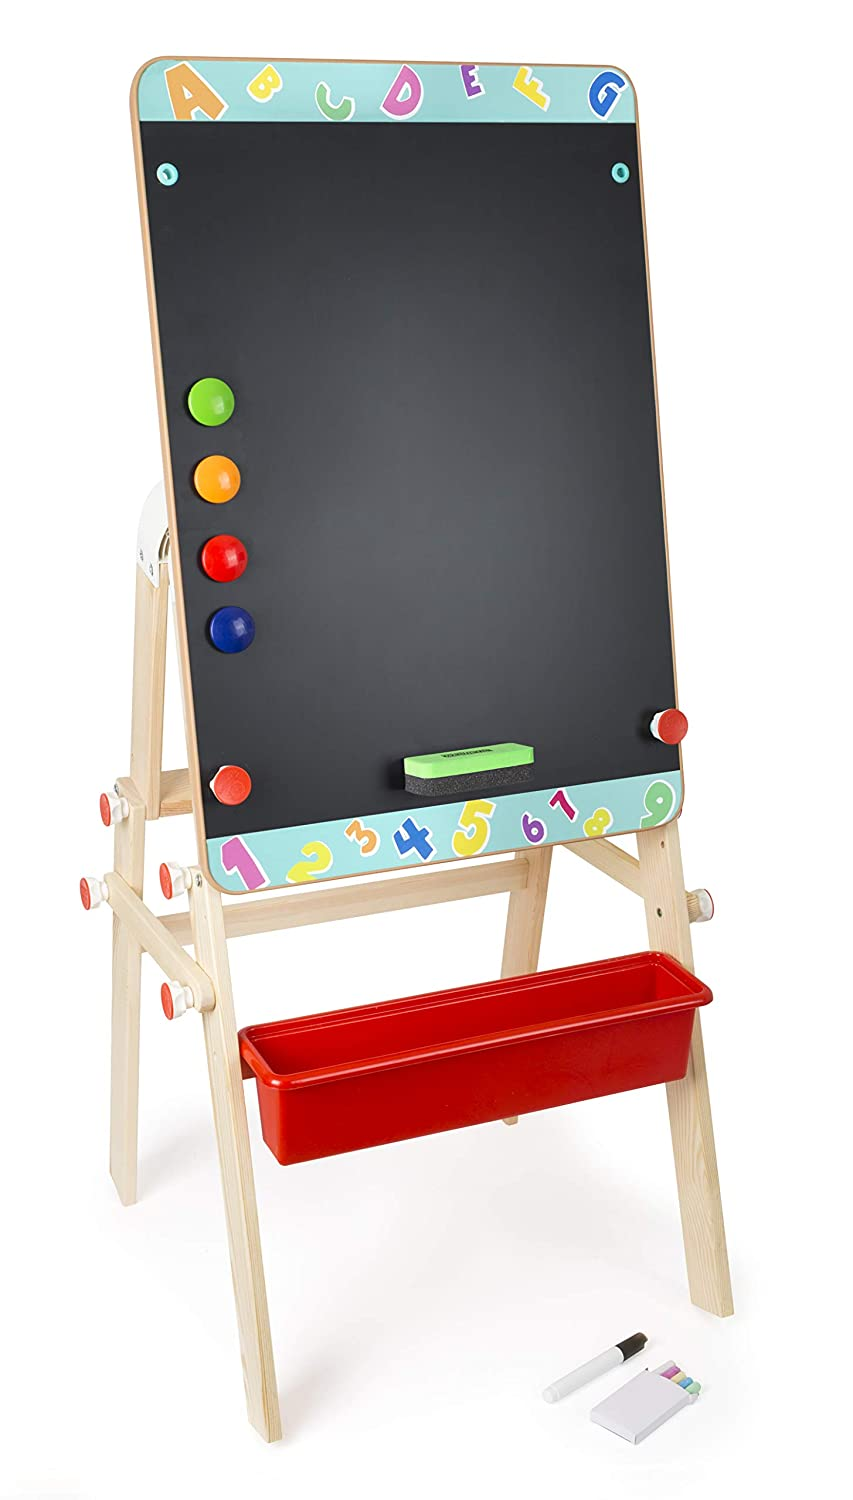 small foot company Wooden 2-in-1 Chalkboard Table